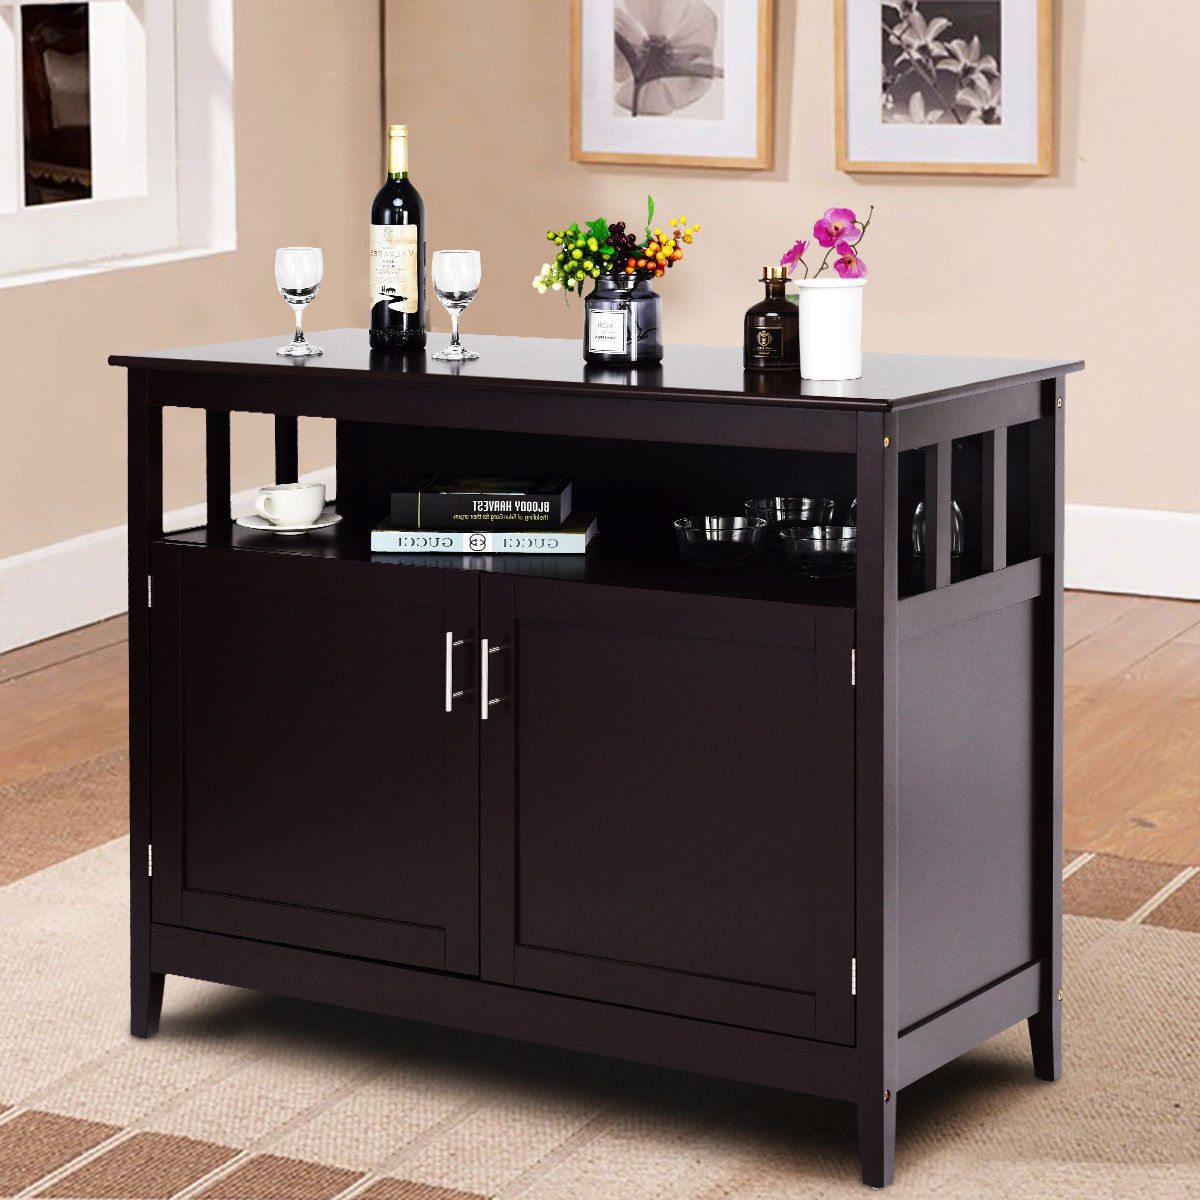 Costway Modern Kitchen Storage Cabinet Buffet Server Table Sideboard Dining Wood Brown by Costway